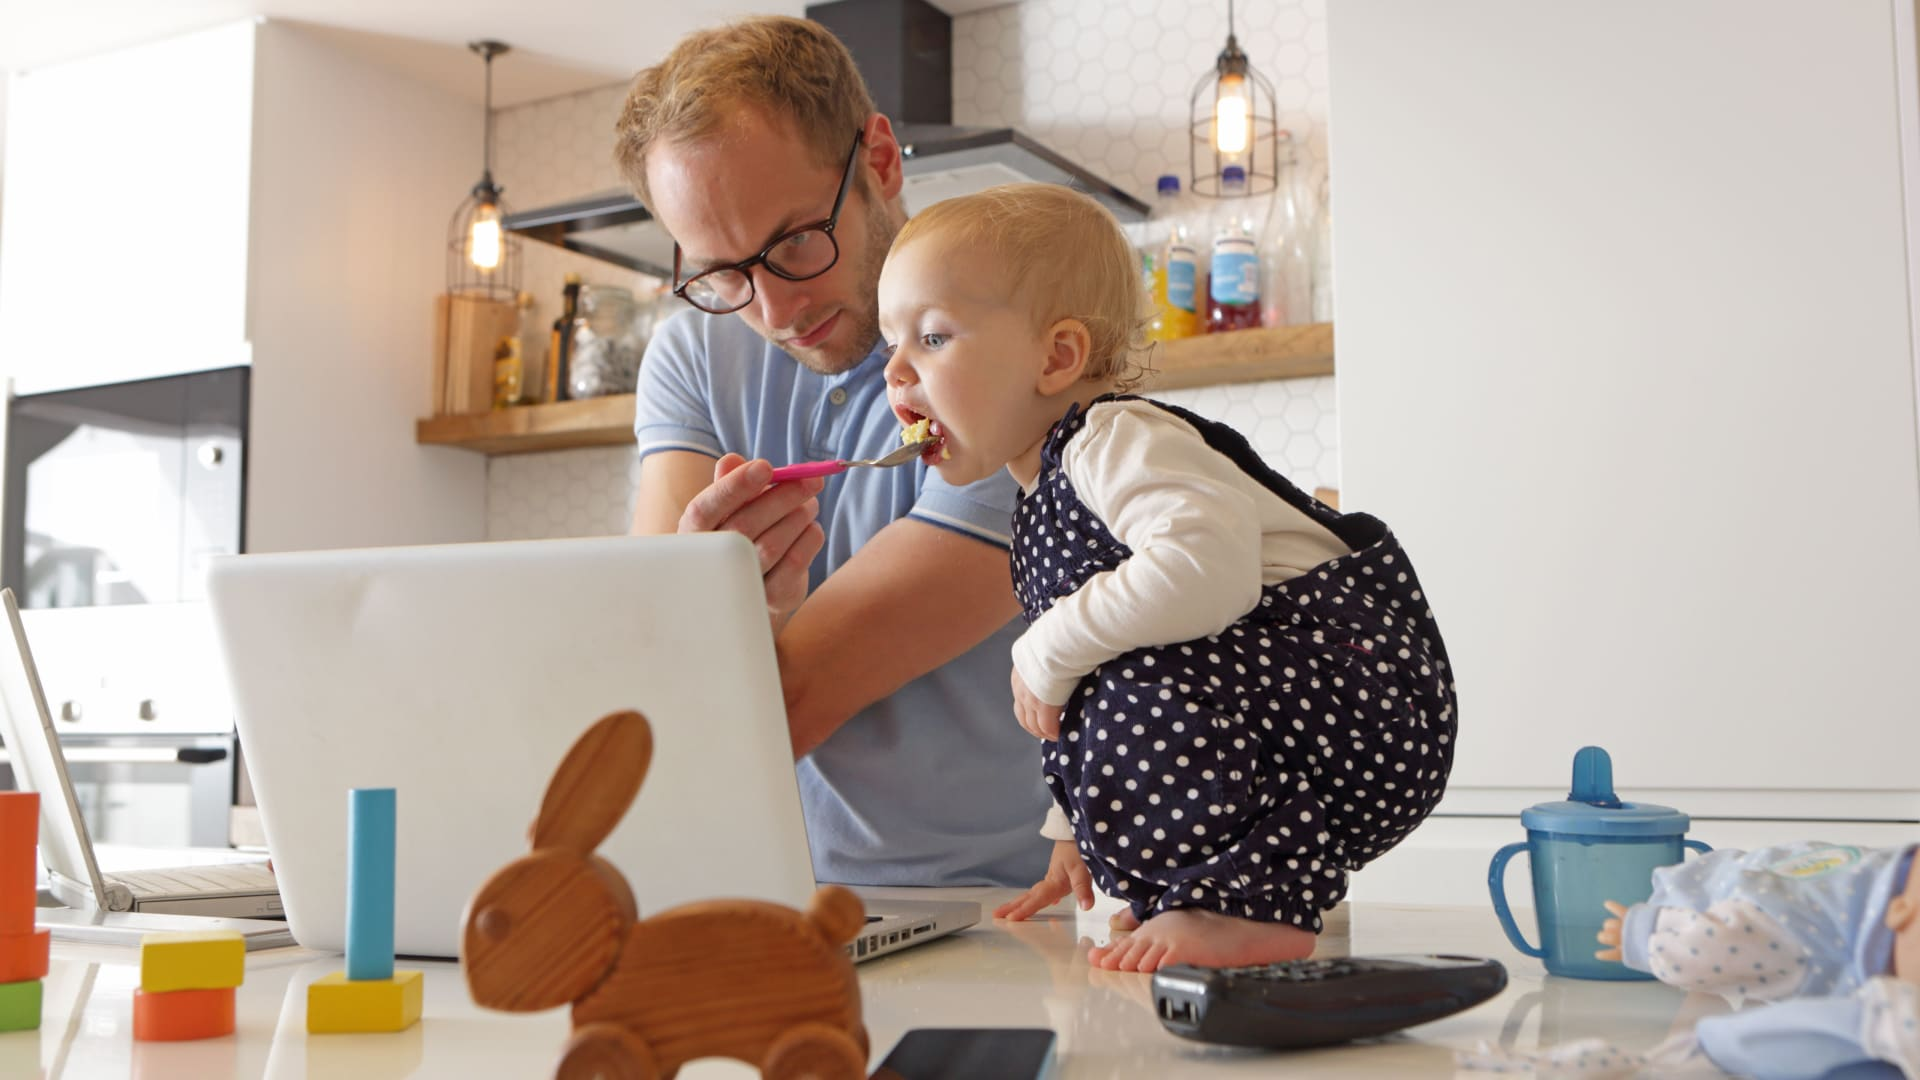 Employers, It's Time to Rethink Your Child Care Benefits